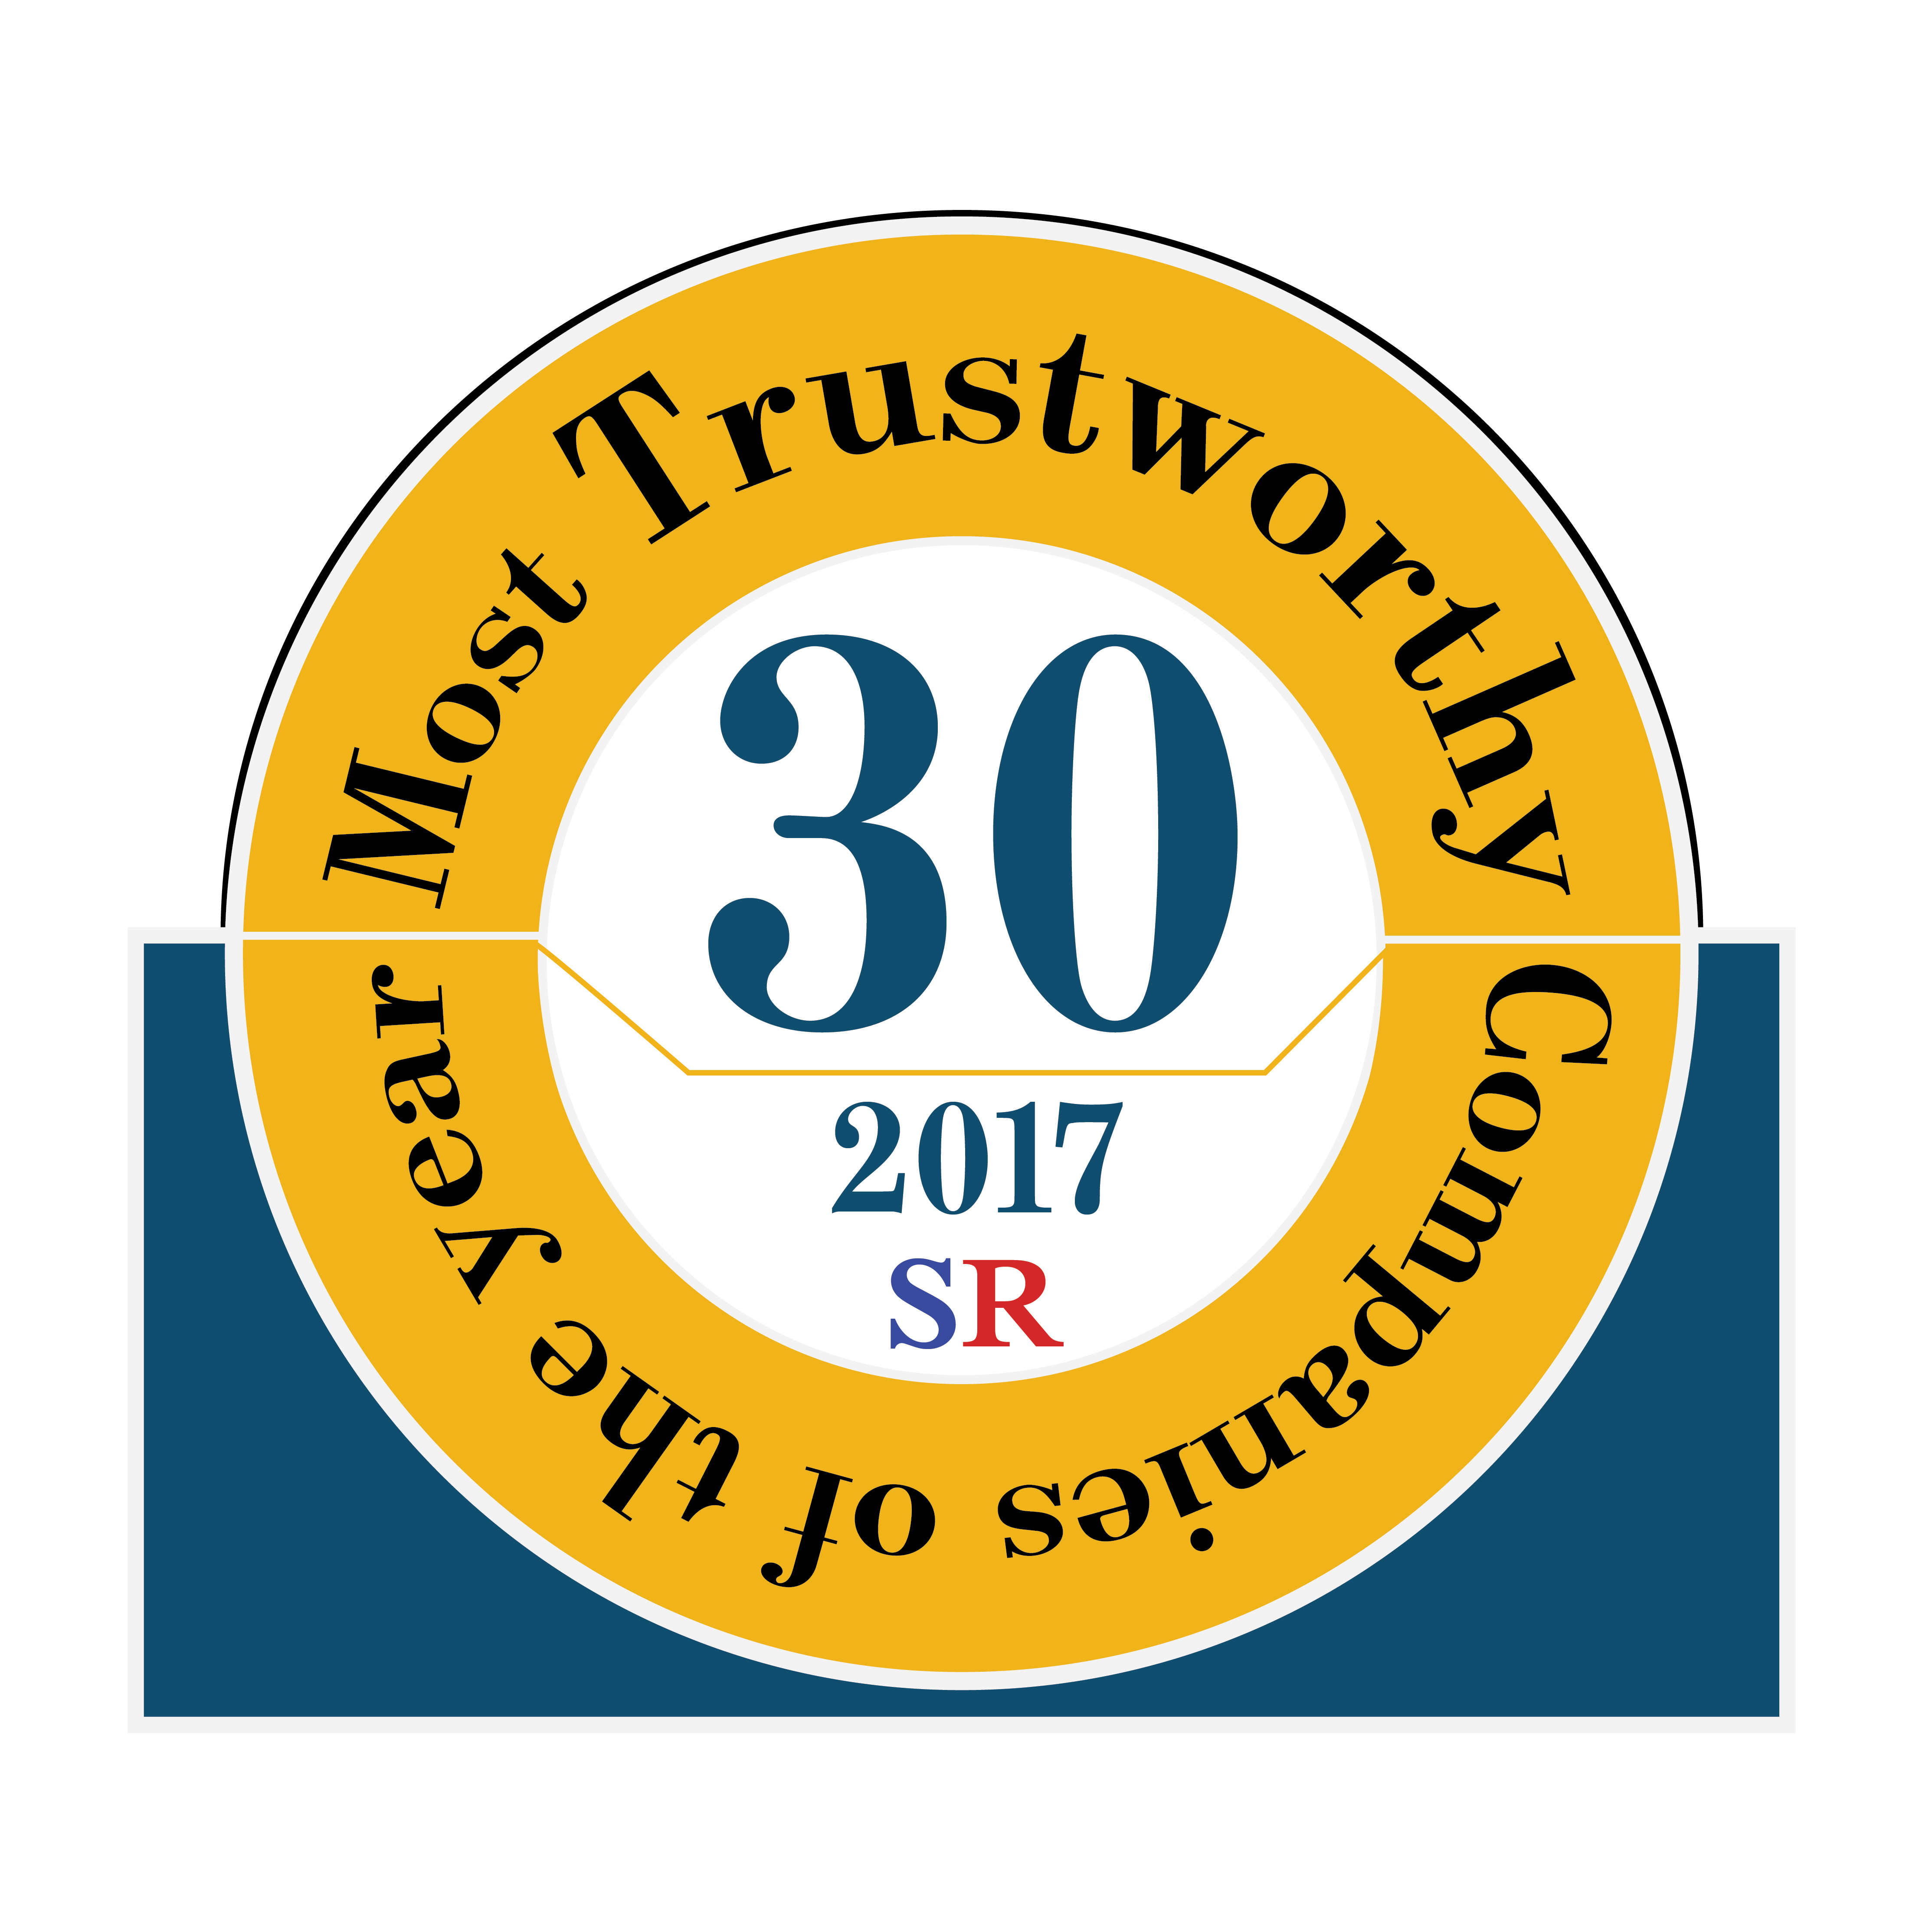 30 Most Trust Worthy Companies of the Year 2017.Png[2].png